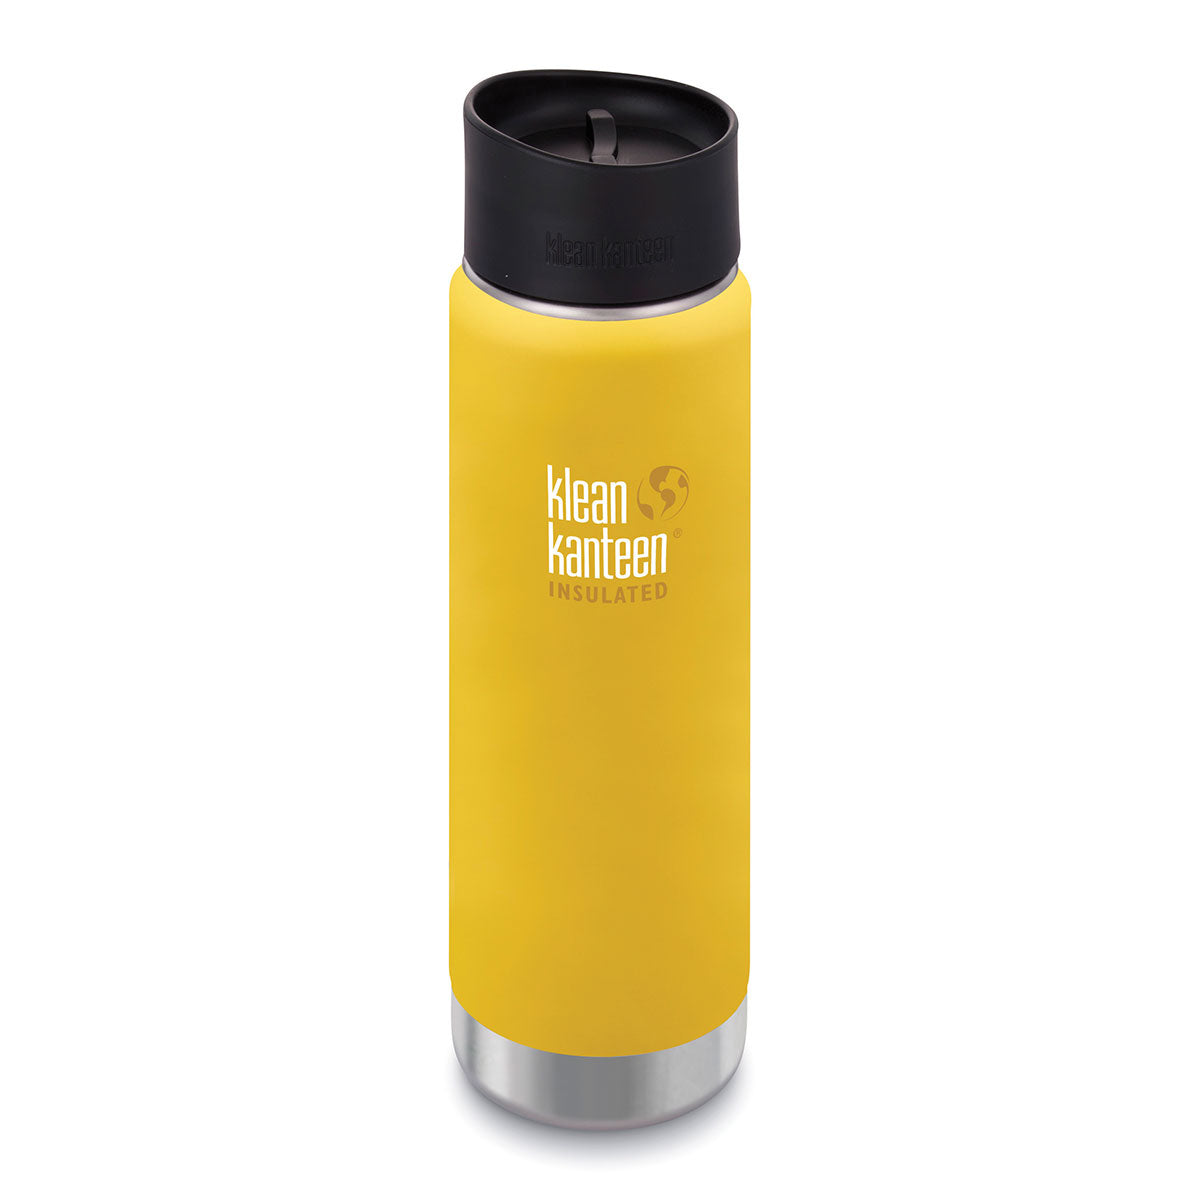 Klean Kanteen Klean Kanteen Insulated Classic Wide 20oz (592ml) - BNR Industrial